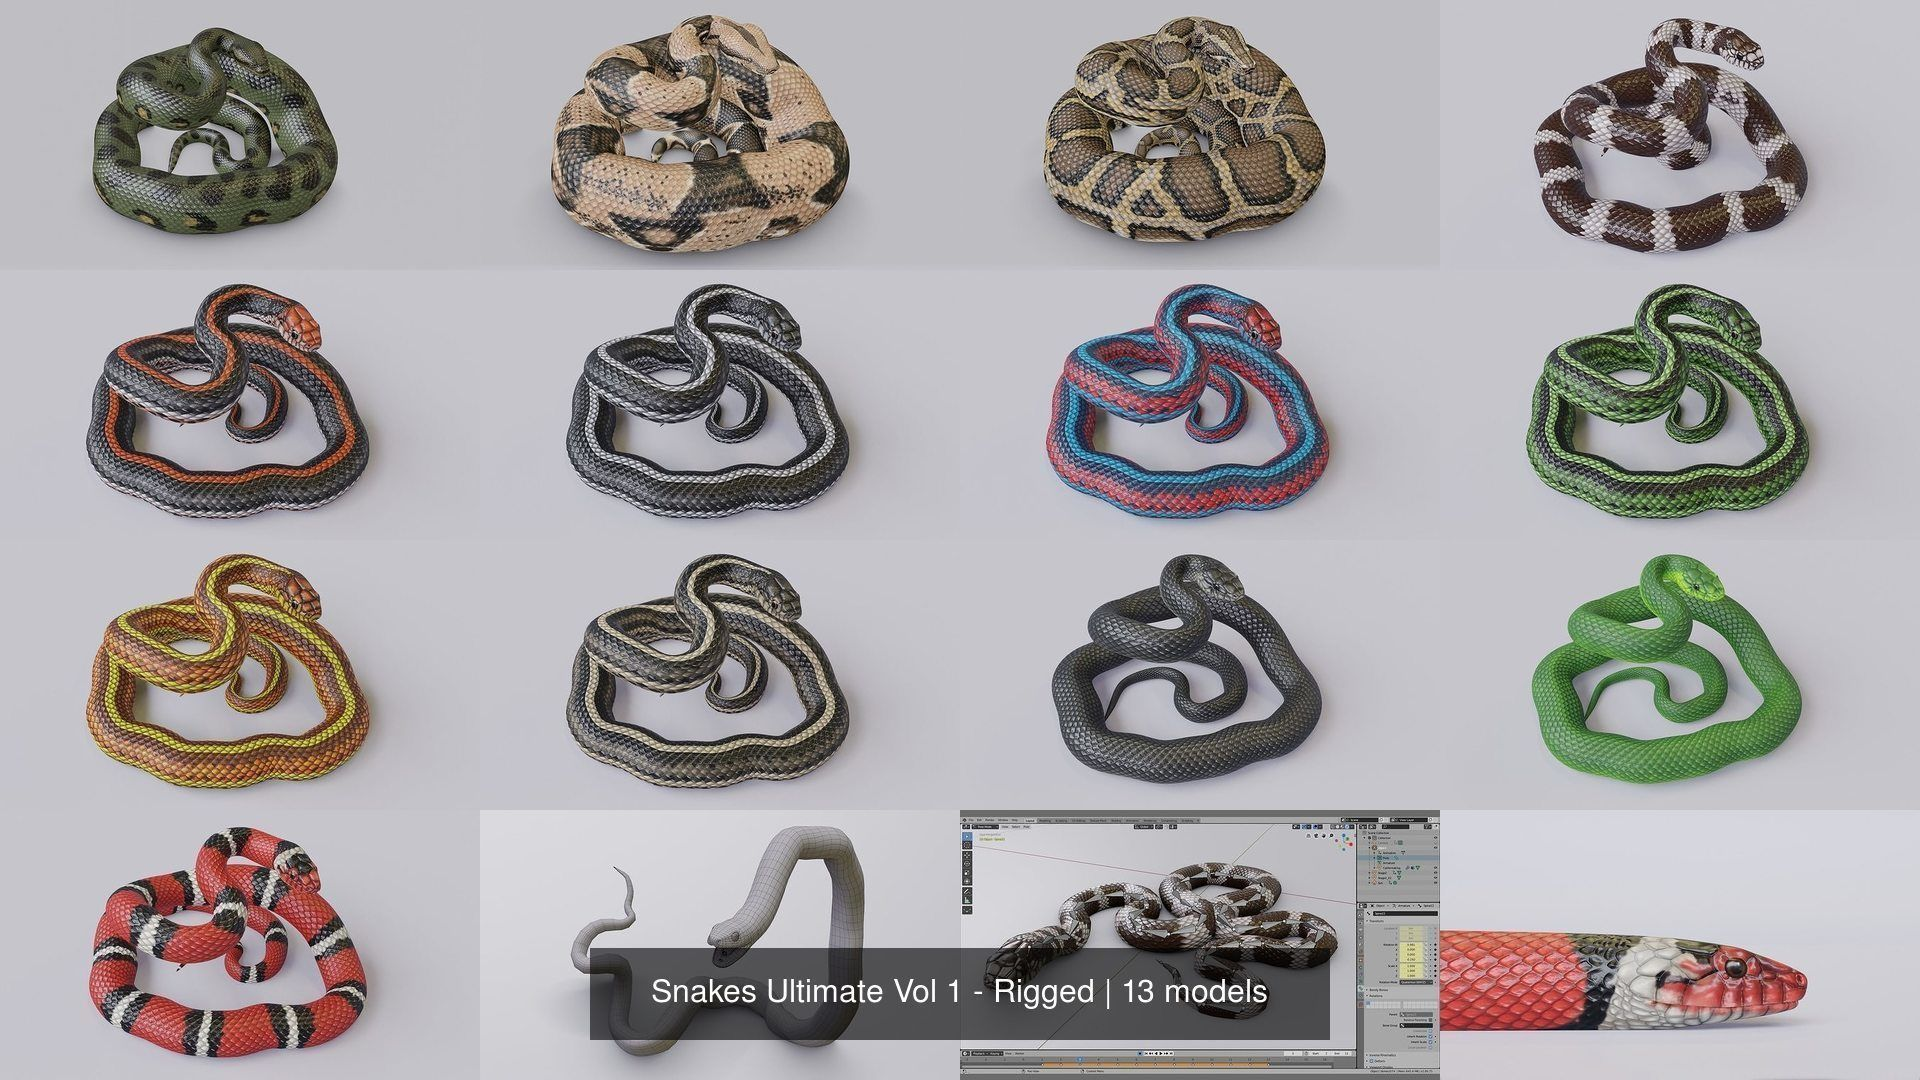 Snakes Ultimate Vol 1 - Rigged